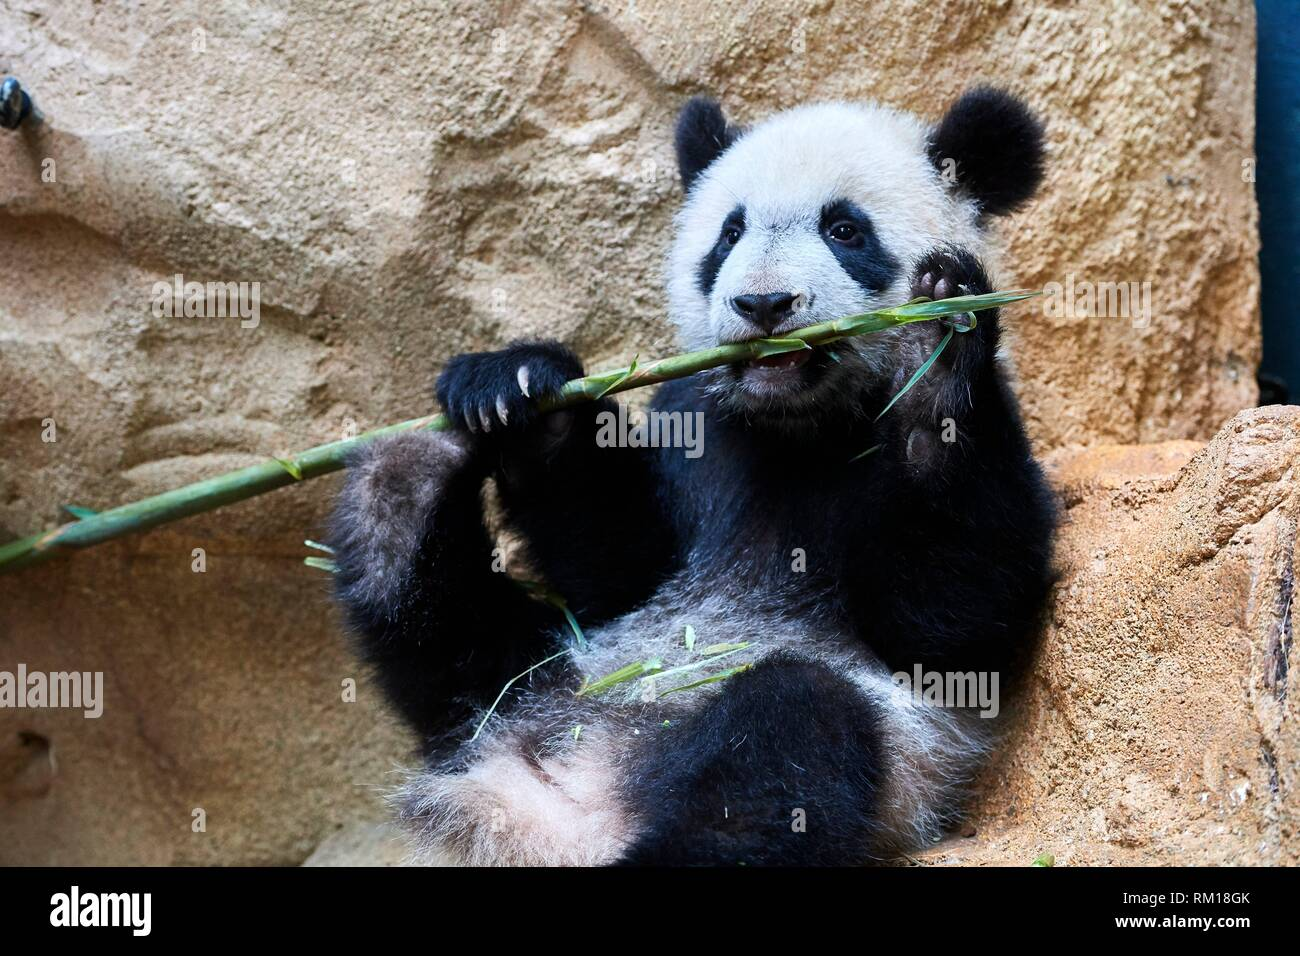 Giant panda cub (Ailuropoda melanoleuca) playfully chewing a bamboo stick. Yuan Meng, first giant panda ever born in France, is now 10 months old and - Stock Image